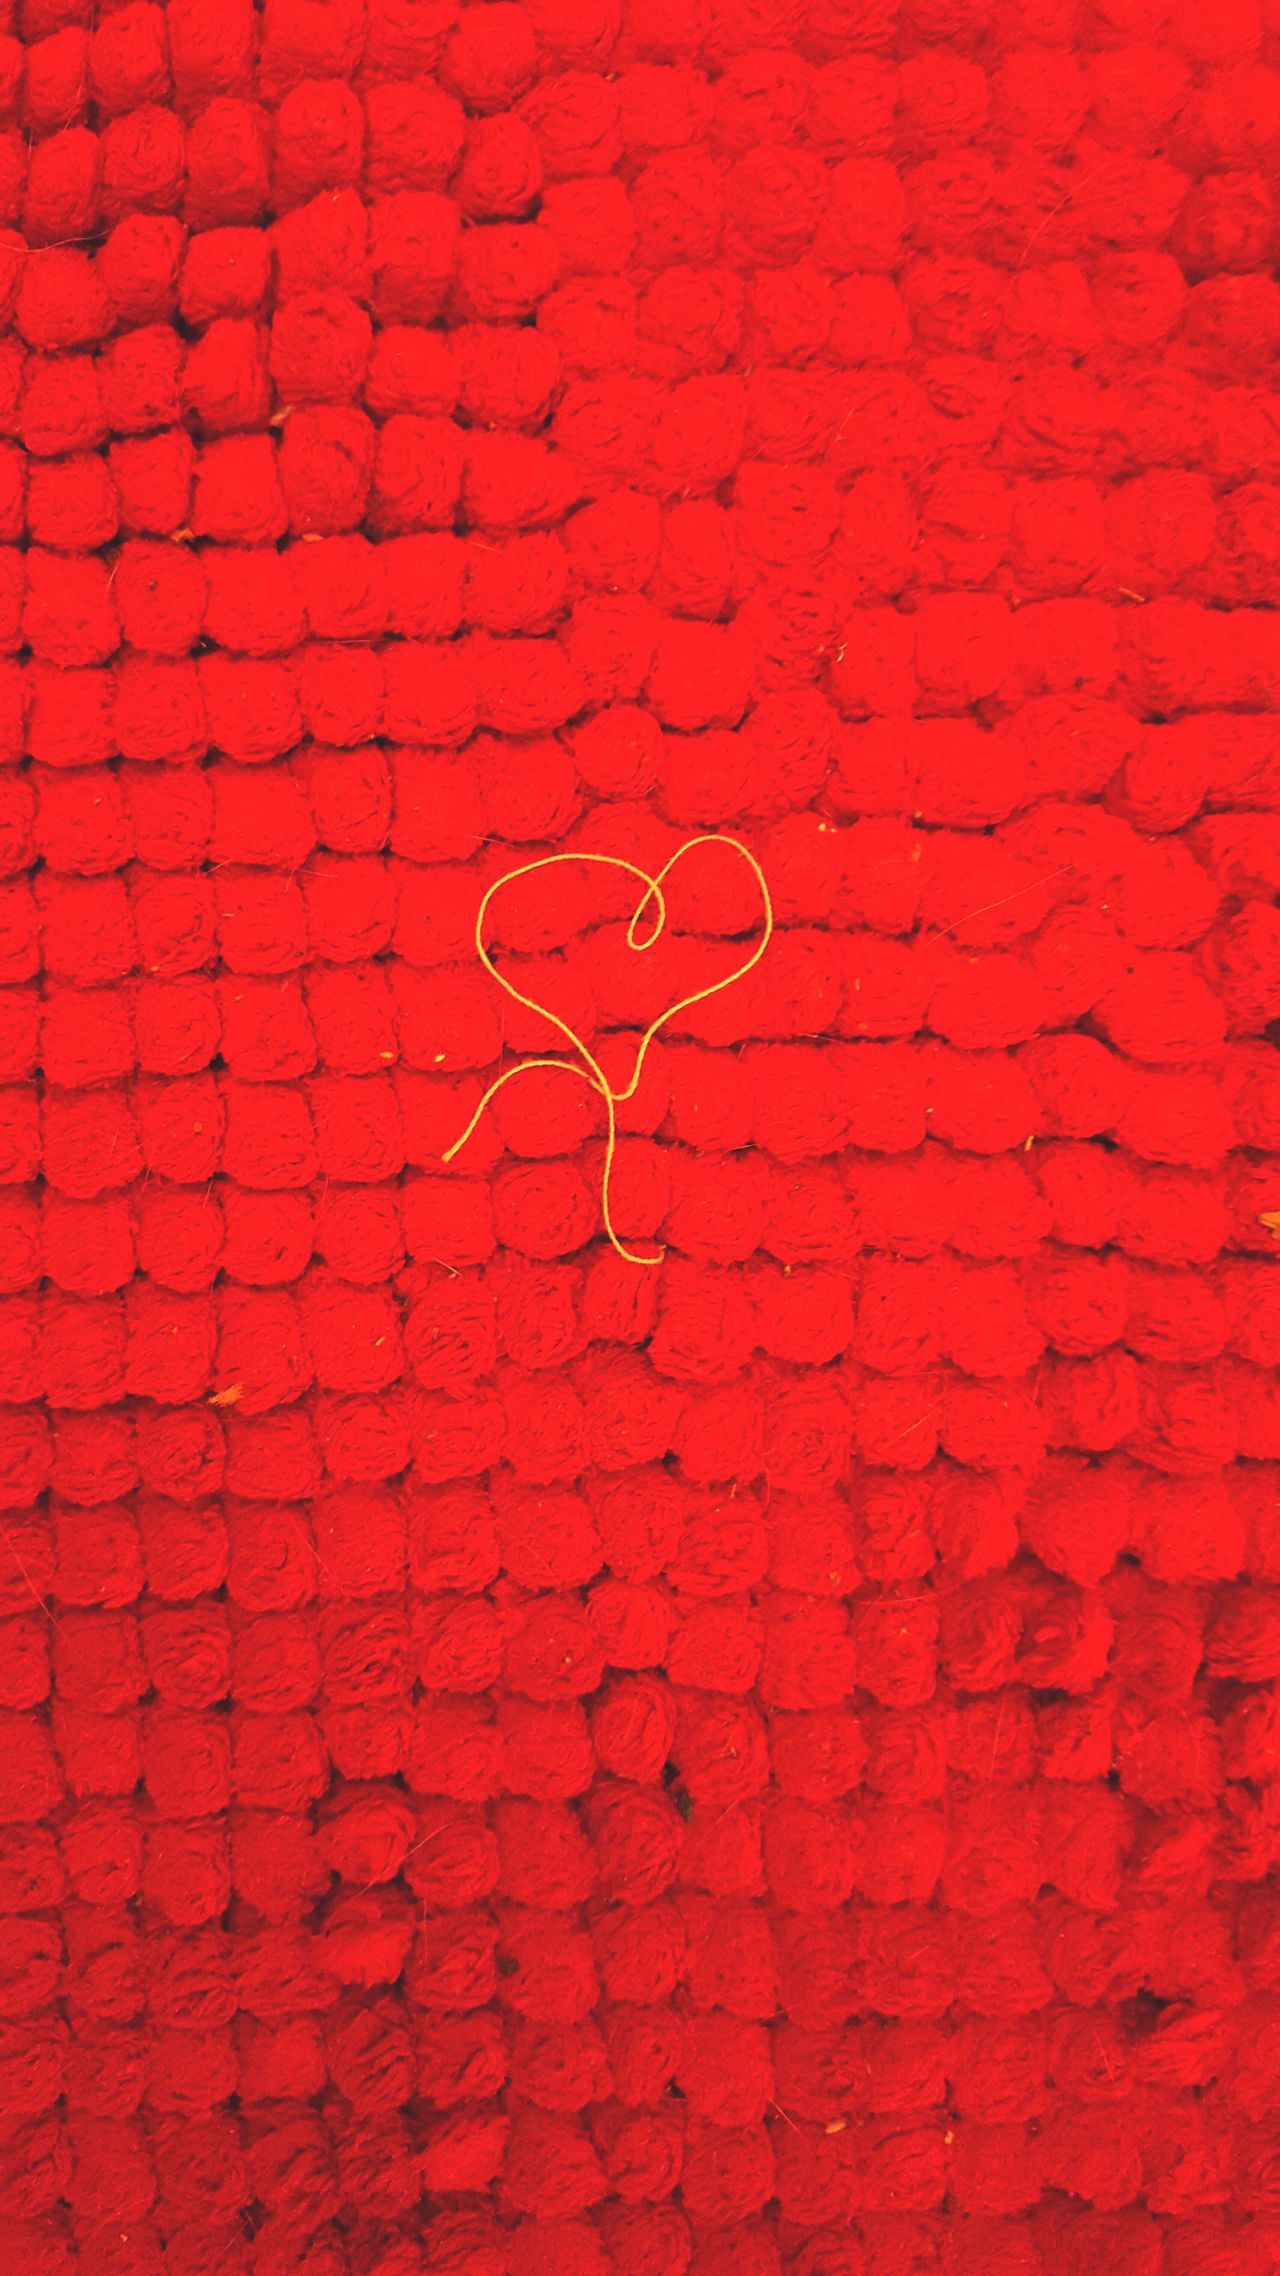 Love Loveiseverywhere Randomshot Red Carpet Heart Pattern, Texture, Shape And Form Coincidencetography